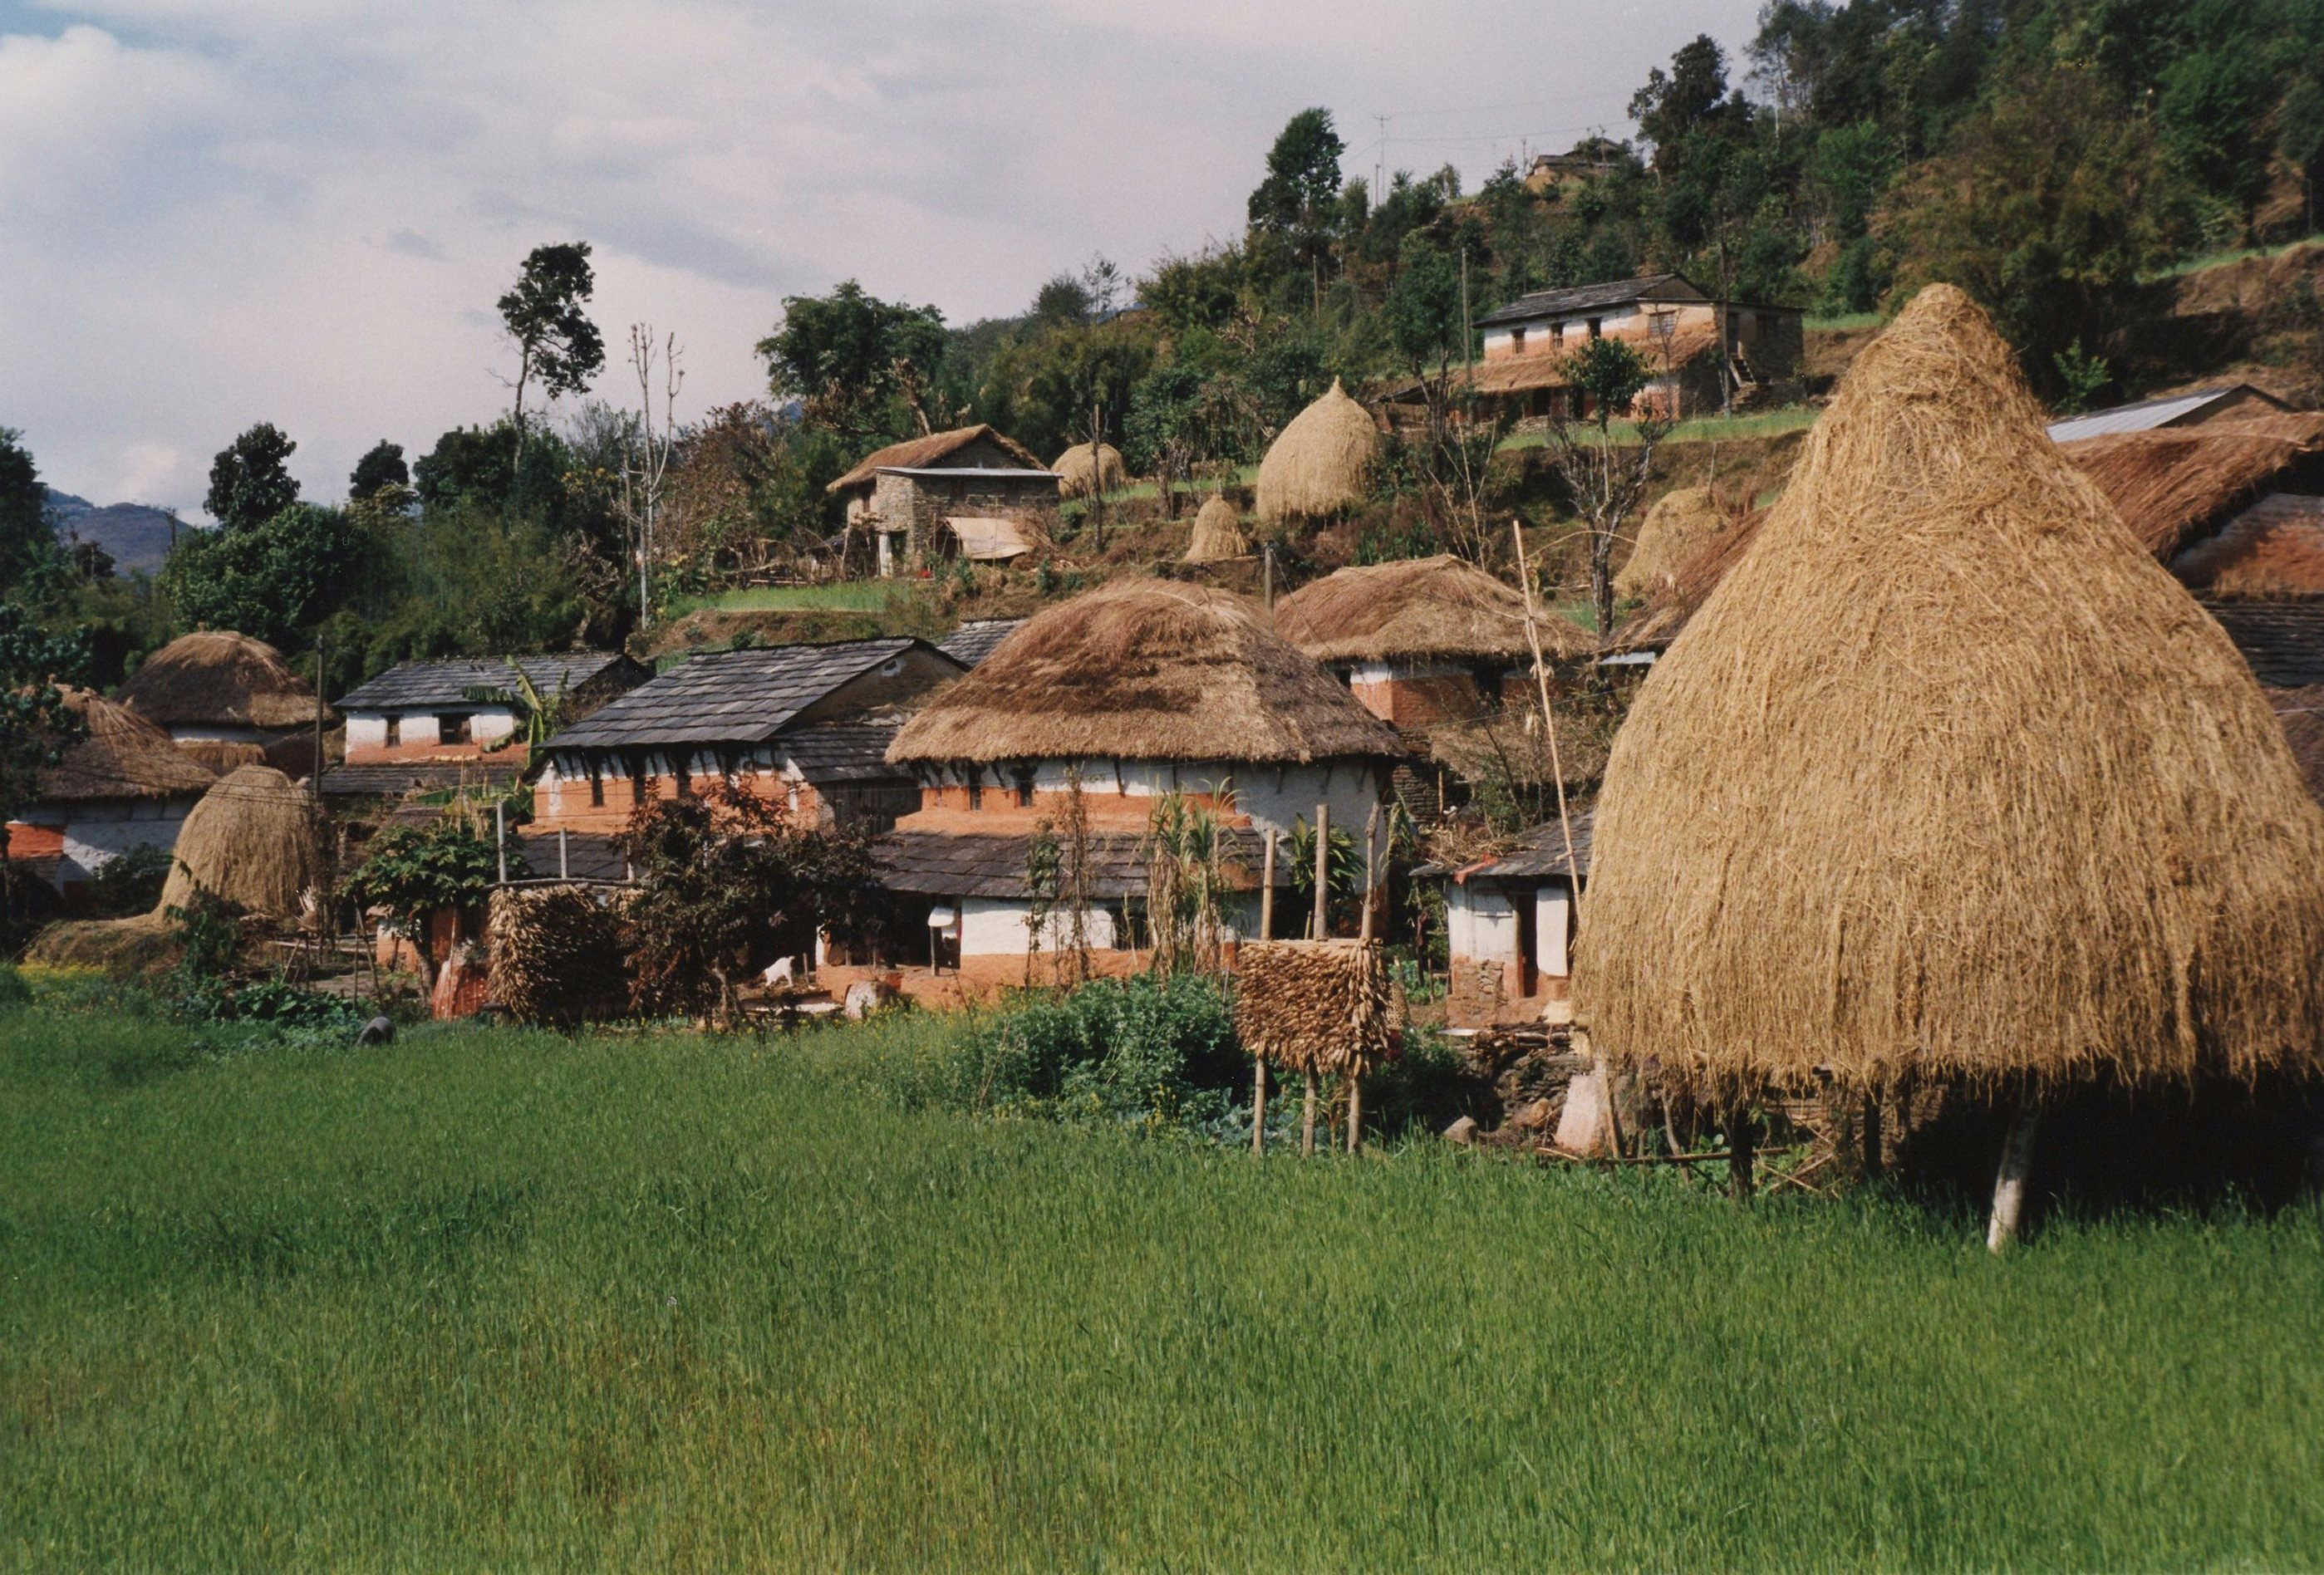 Houses in Countryside